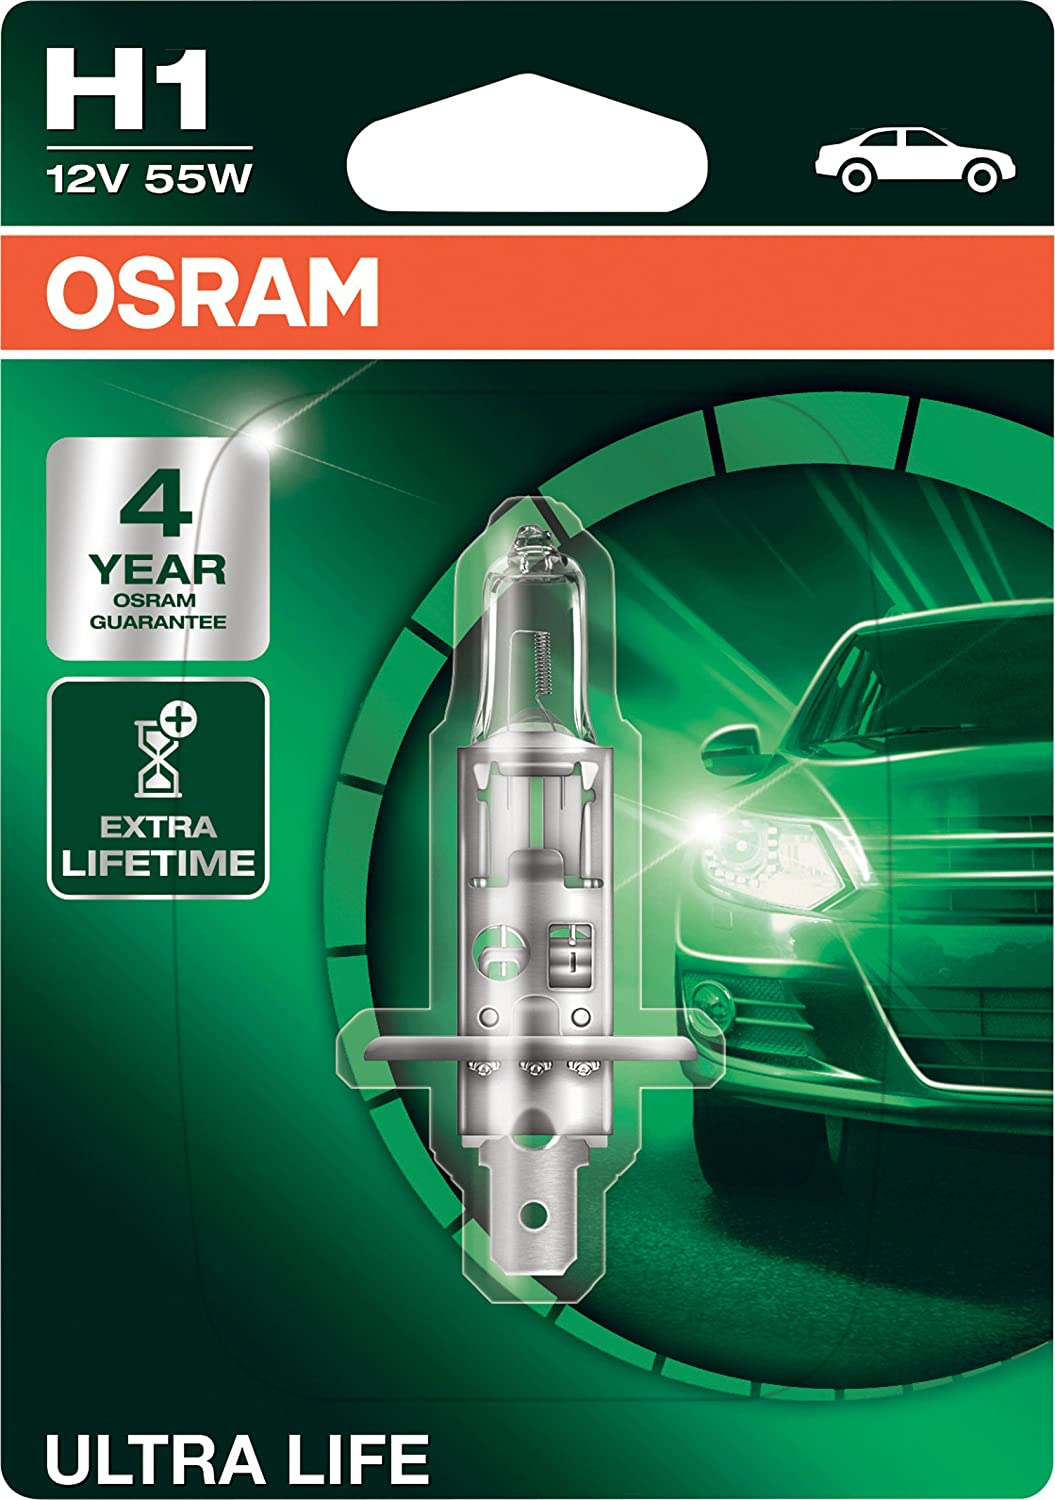 OSRAM COOL BLUE INTENSE H1, headlight bulb for halogen headlamps, xenon effect for white light, 64150CBI-HCB, 12V passenger car, duobox (2 units)